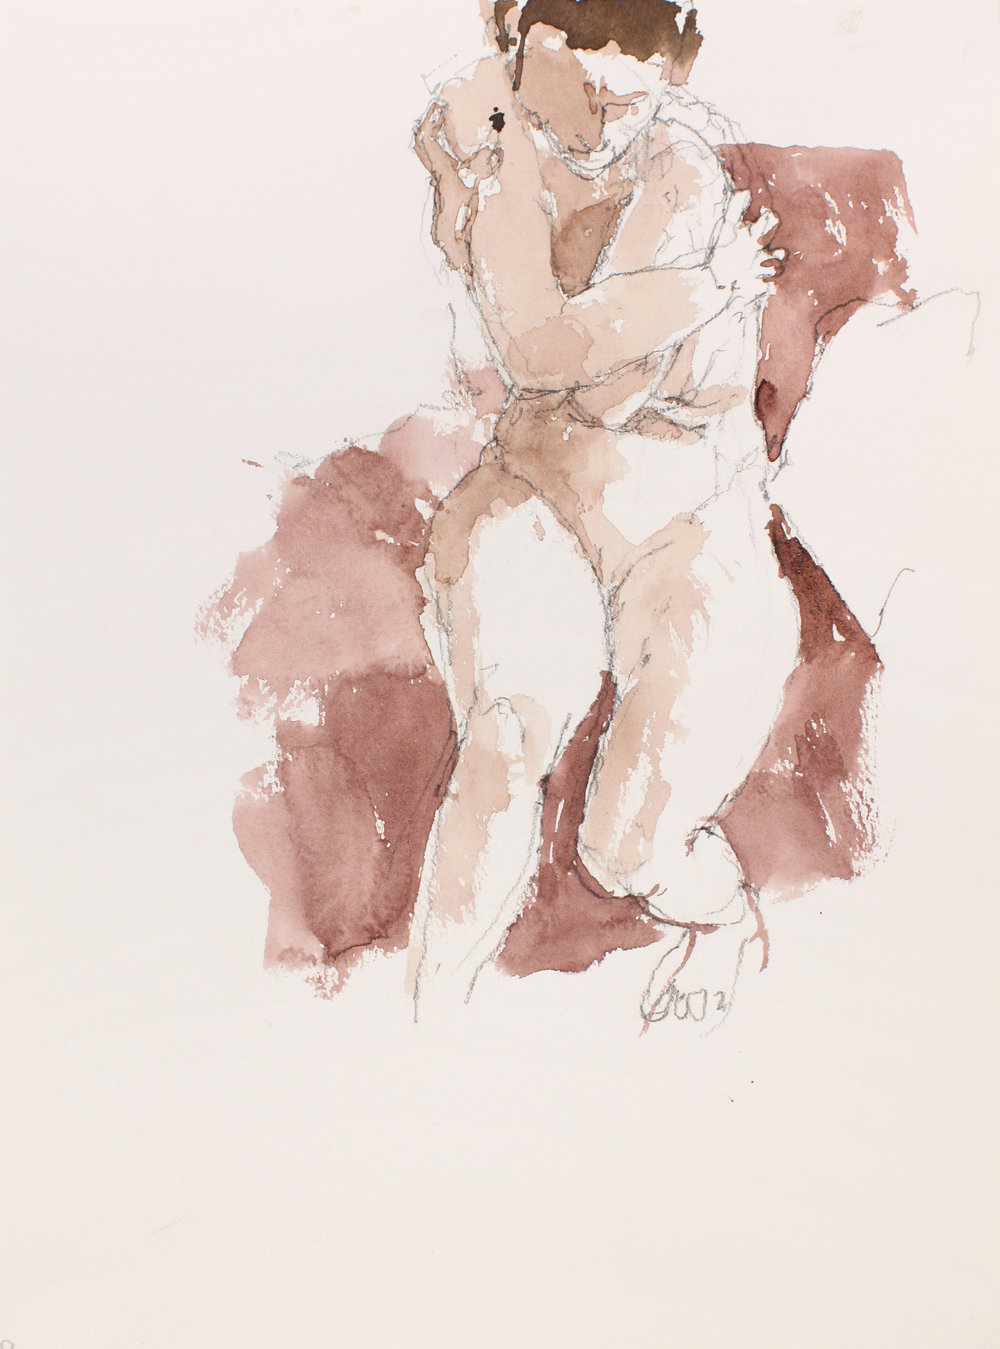 2007_Seated_Nude_with_Clasped_Arm_and_Head_Downwards_watercolour_and_pencil_on_paper_15x11in_WPF512.jpg